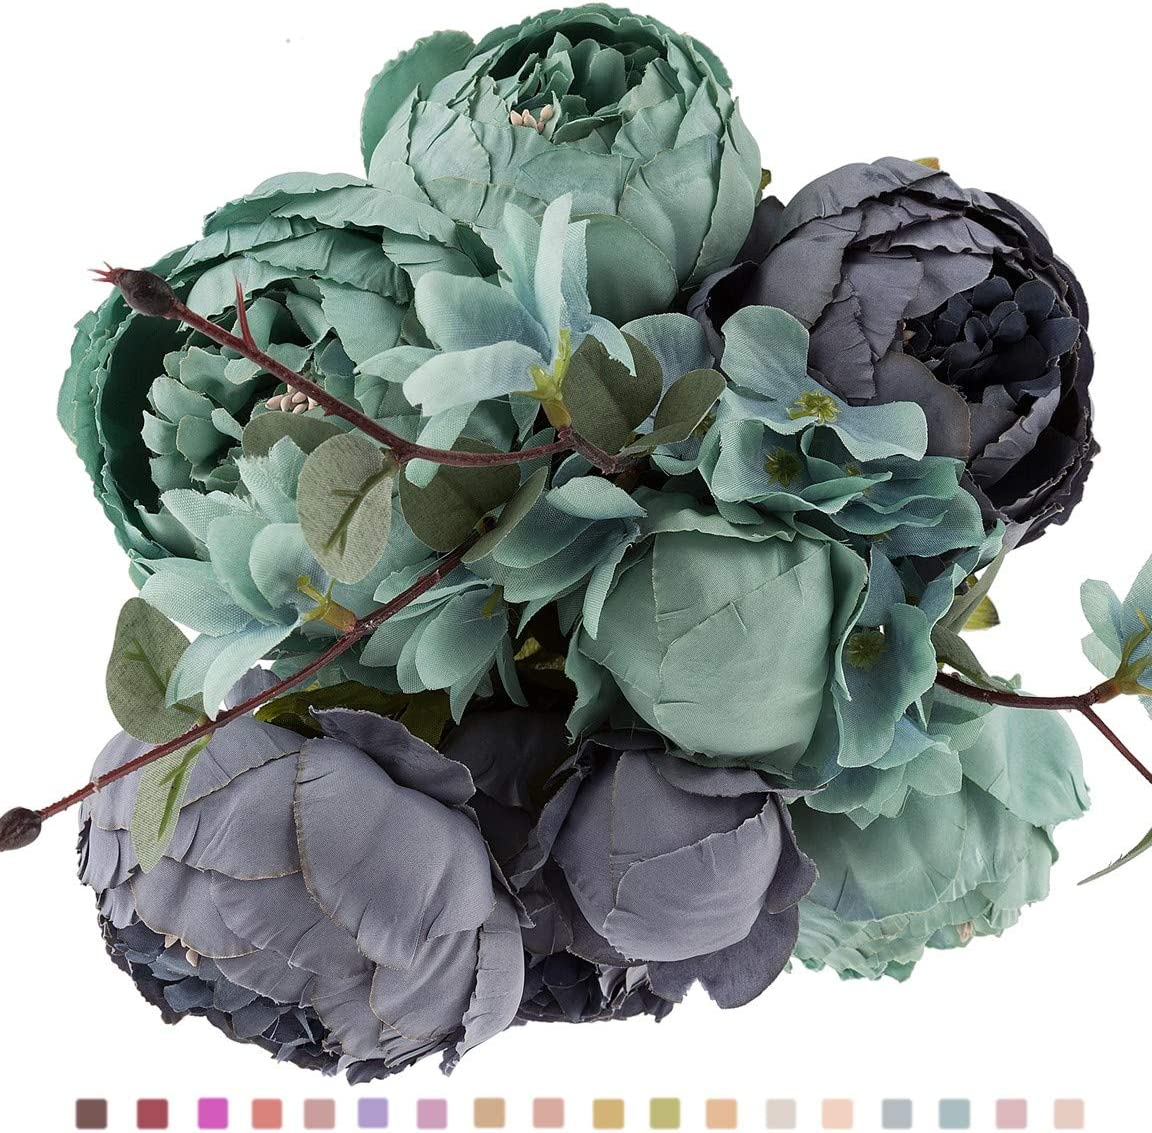 EZFLOWERY 1 Pack Artificial Peony Silk Flowers Arrangement Bouquet for Wedding Centerpiece Room Party Home Decoration, Elegant Vintage, Perfect for Spring, Summer and Occasions (1, New Blue)